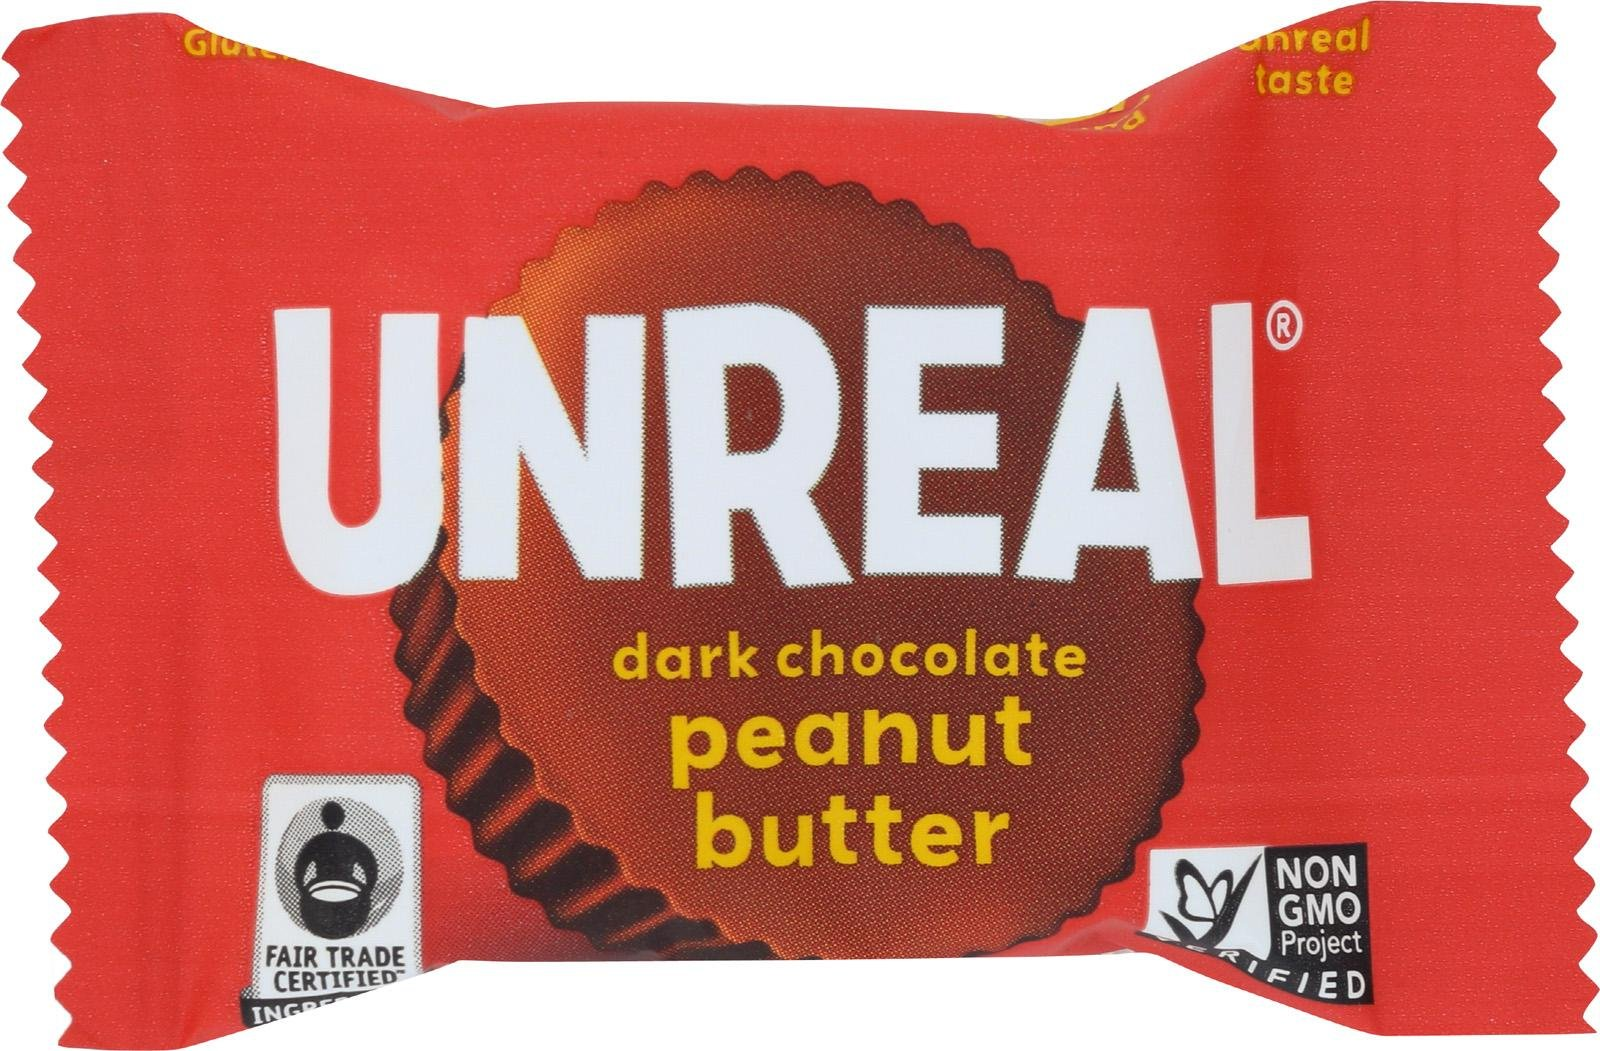 Unreal, Peanut butter Cup, Dark Chocolate, Mini, Pack of 40, Size - .5 OZ, Quantity - 1 Case